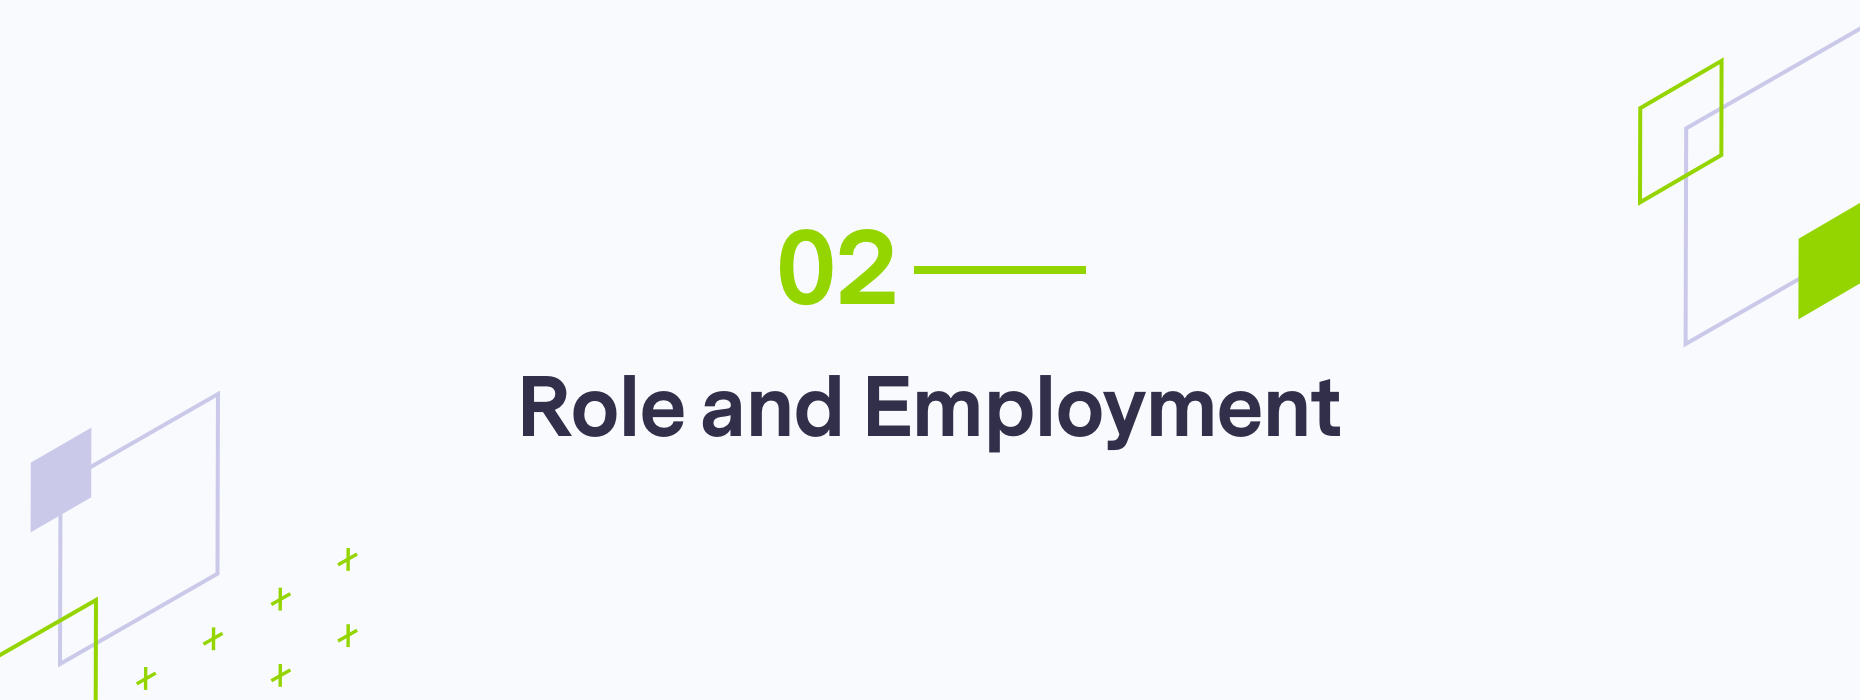 Branded part 2, role and employment graphic